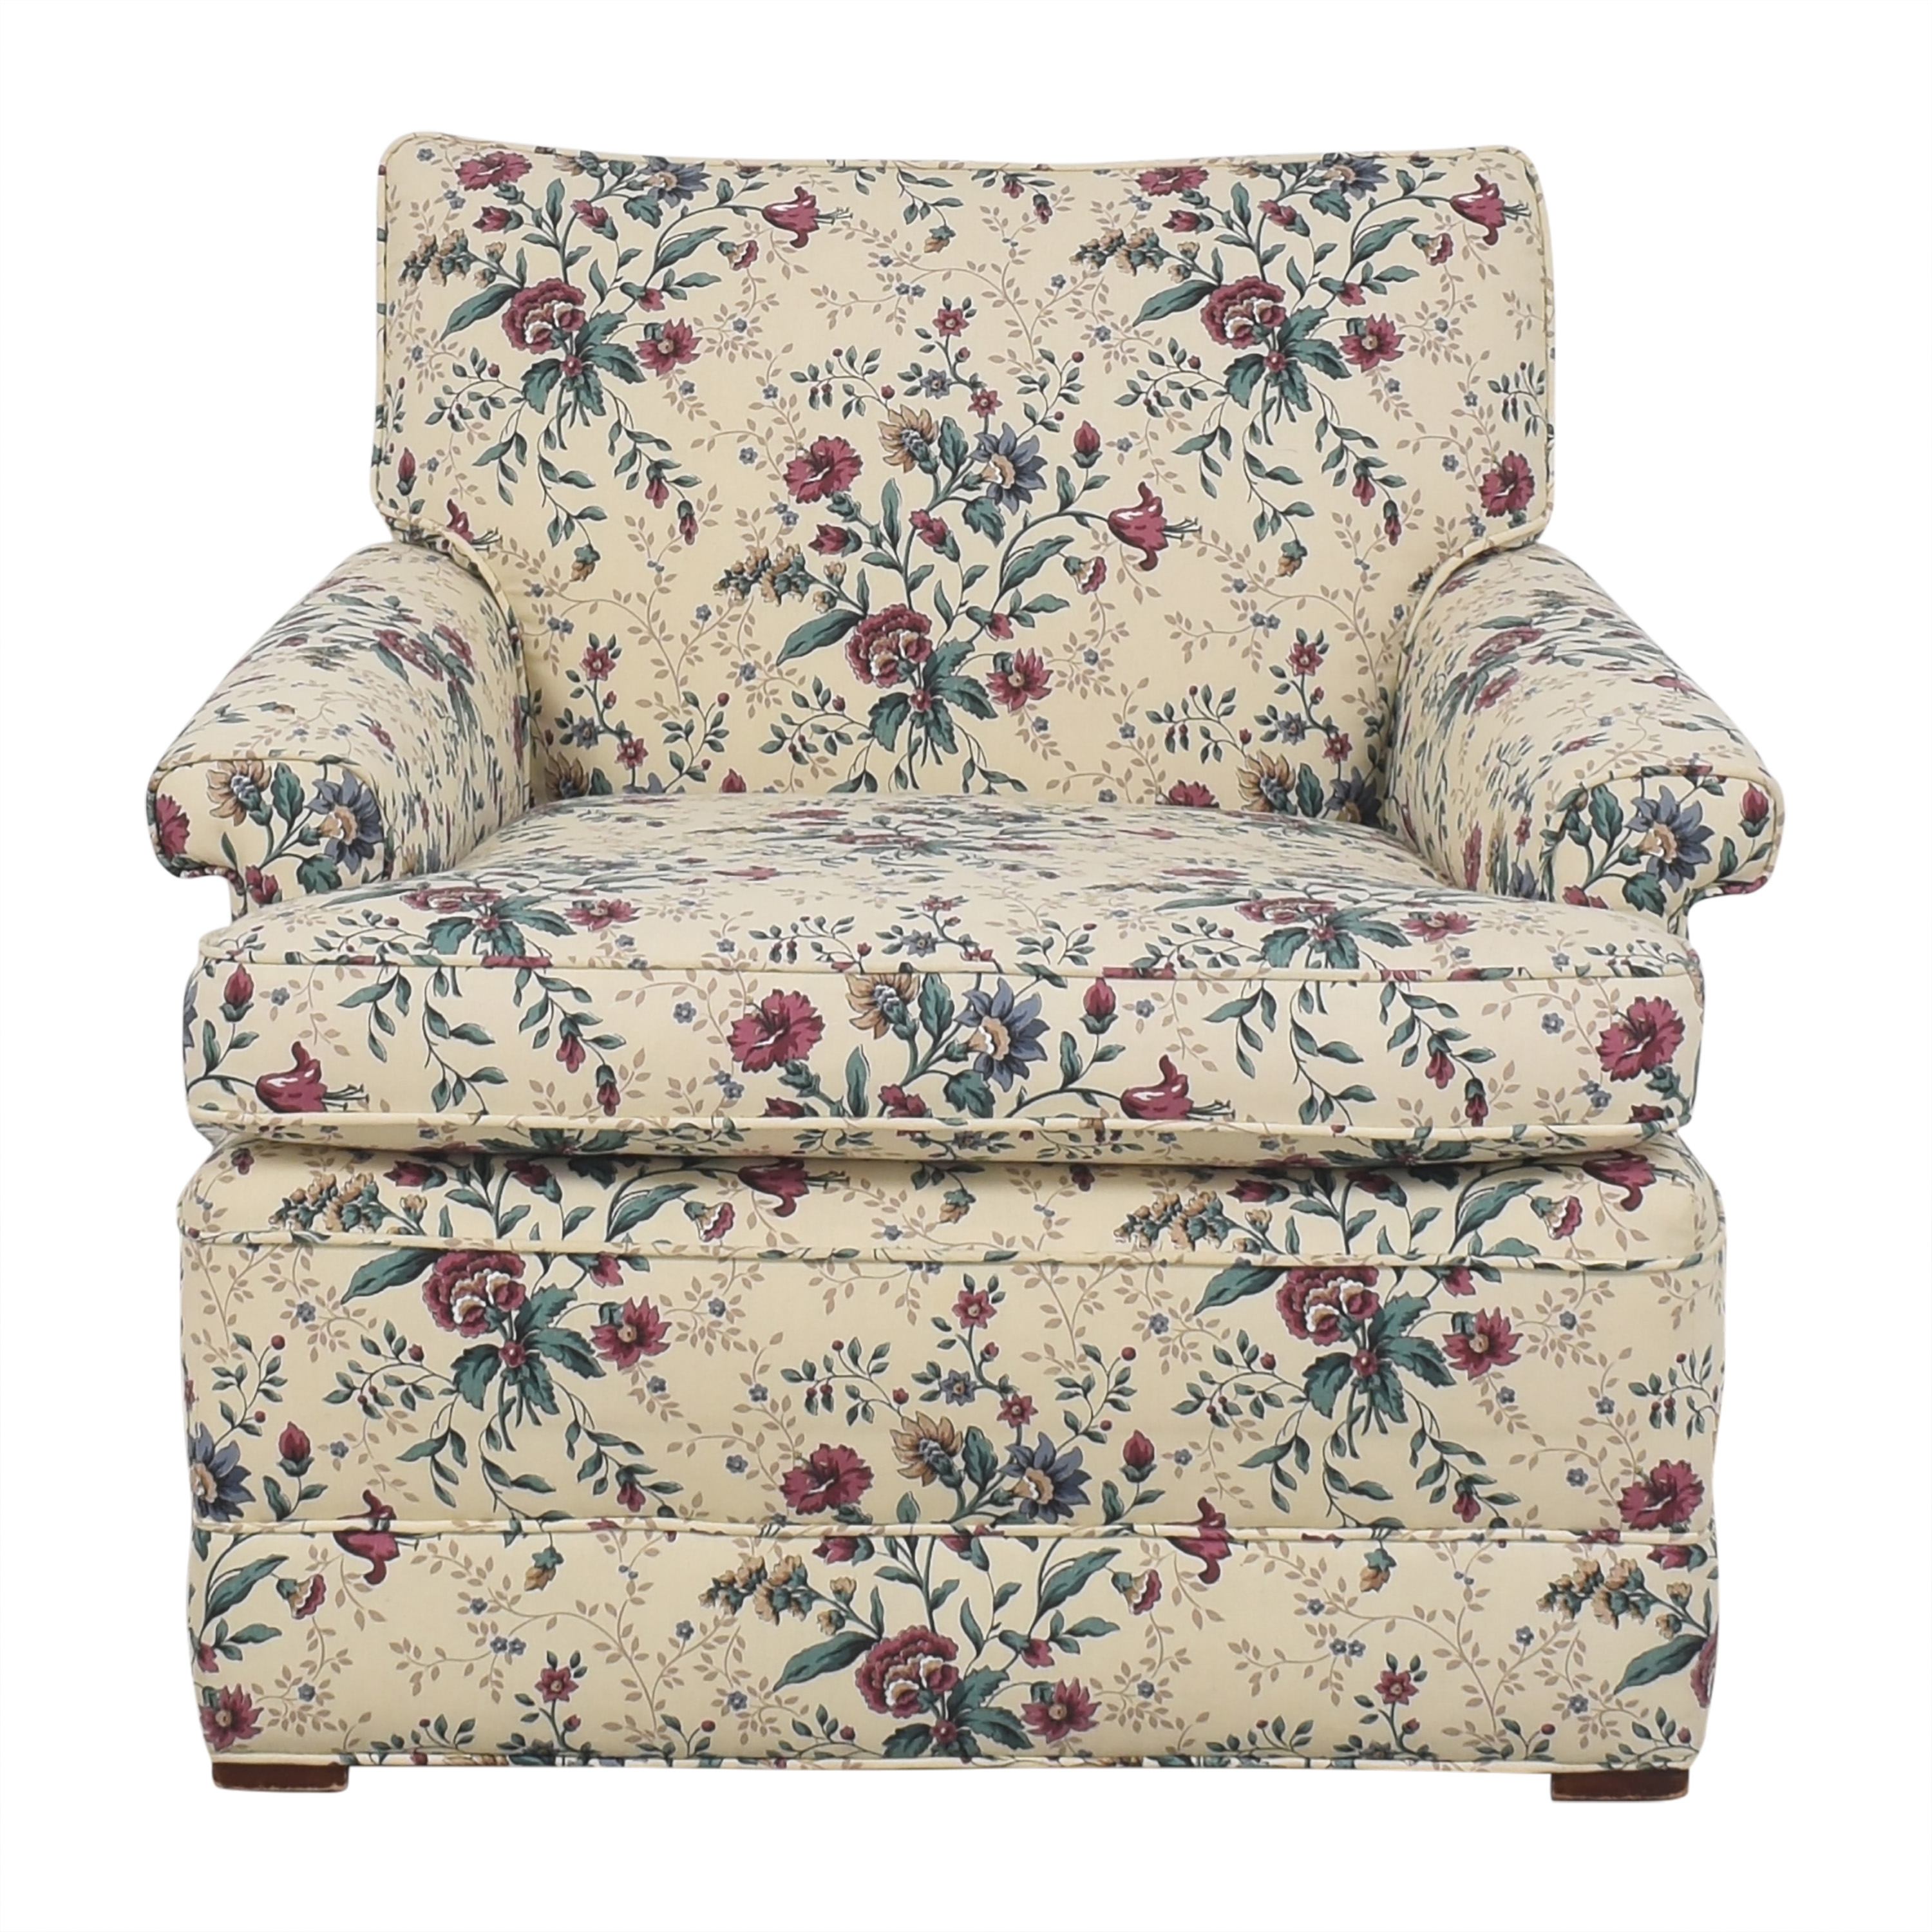 Floral Accent Chair with Ottoman Accent Chairs